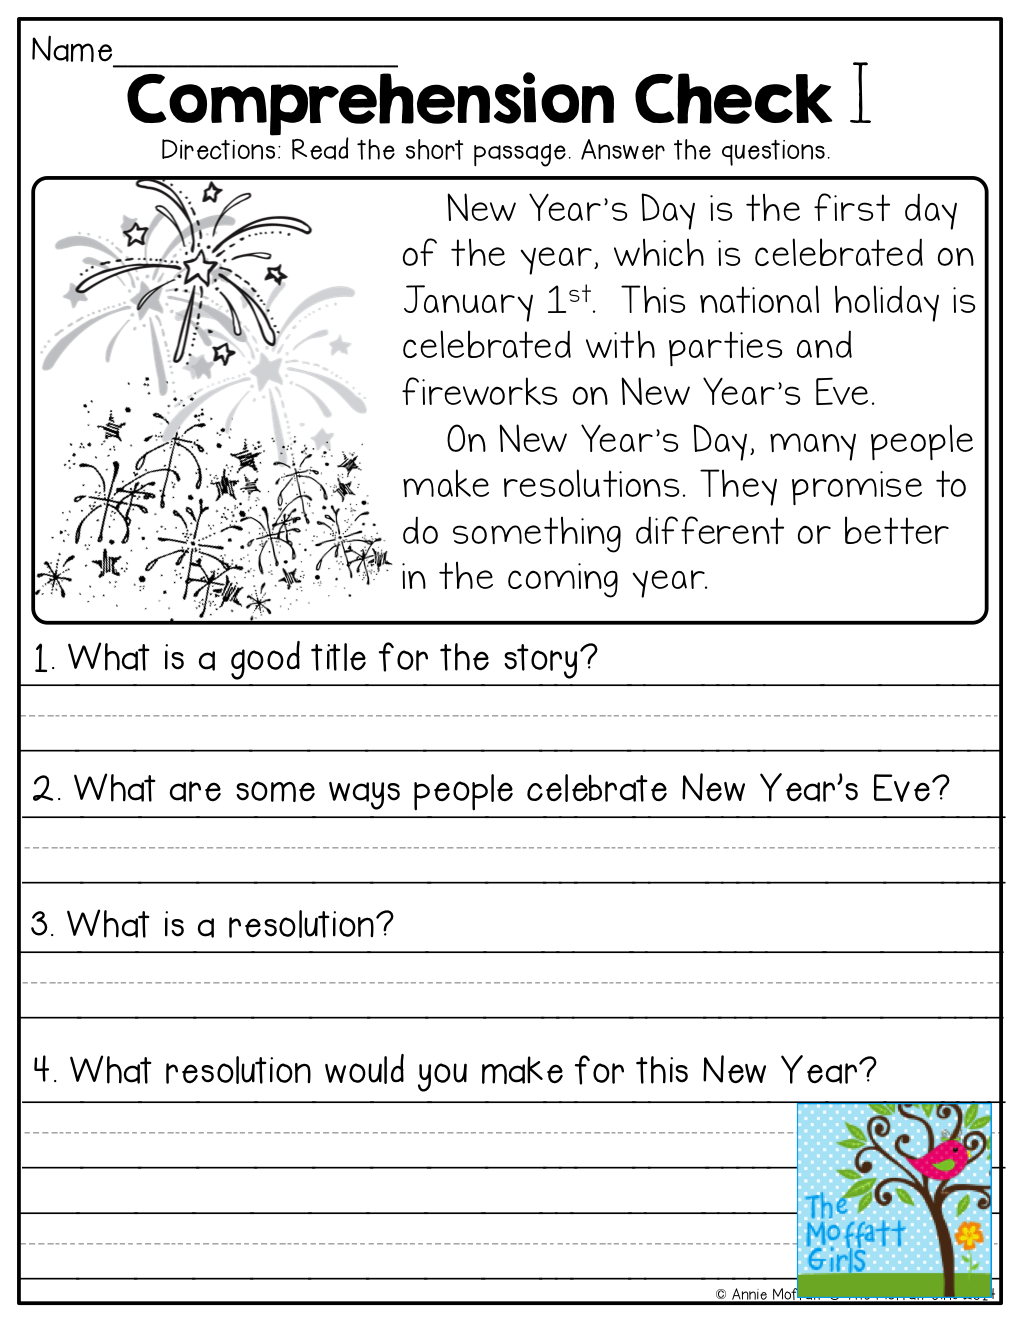 Worksheet Reading Passage For 1st Grade comprehension checks and tons of other no prep printables k 2 january math literacy 1st grade learning resourcespreppingreading comprehension